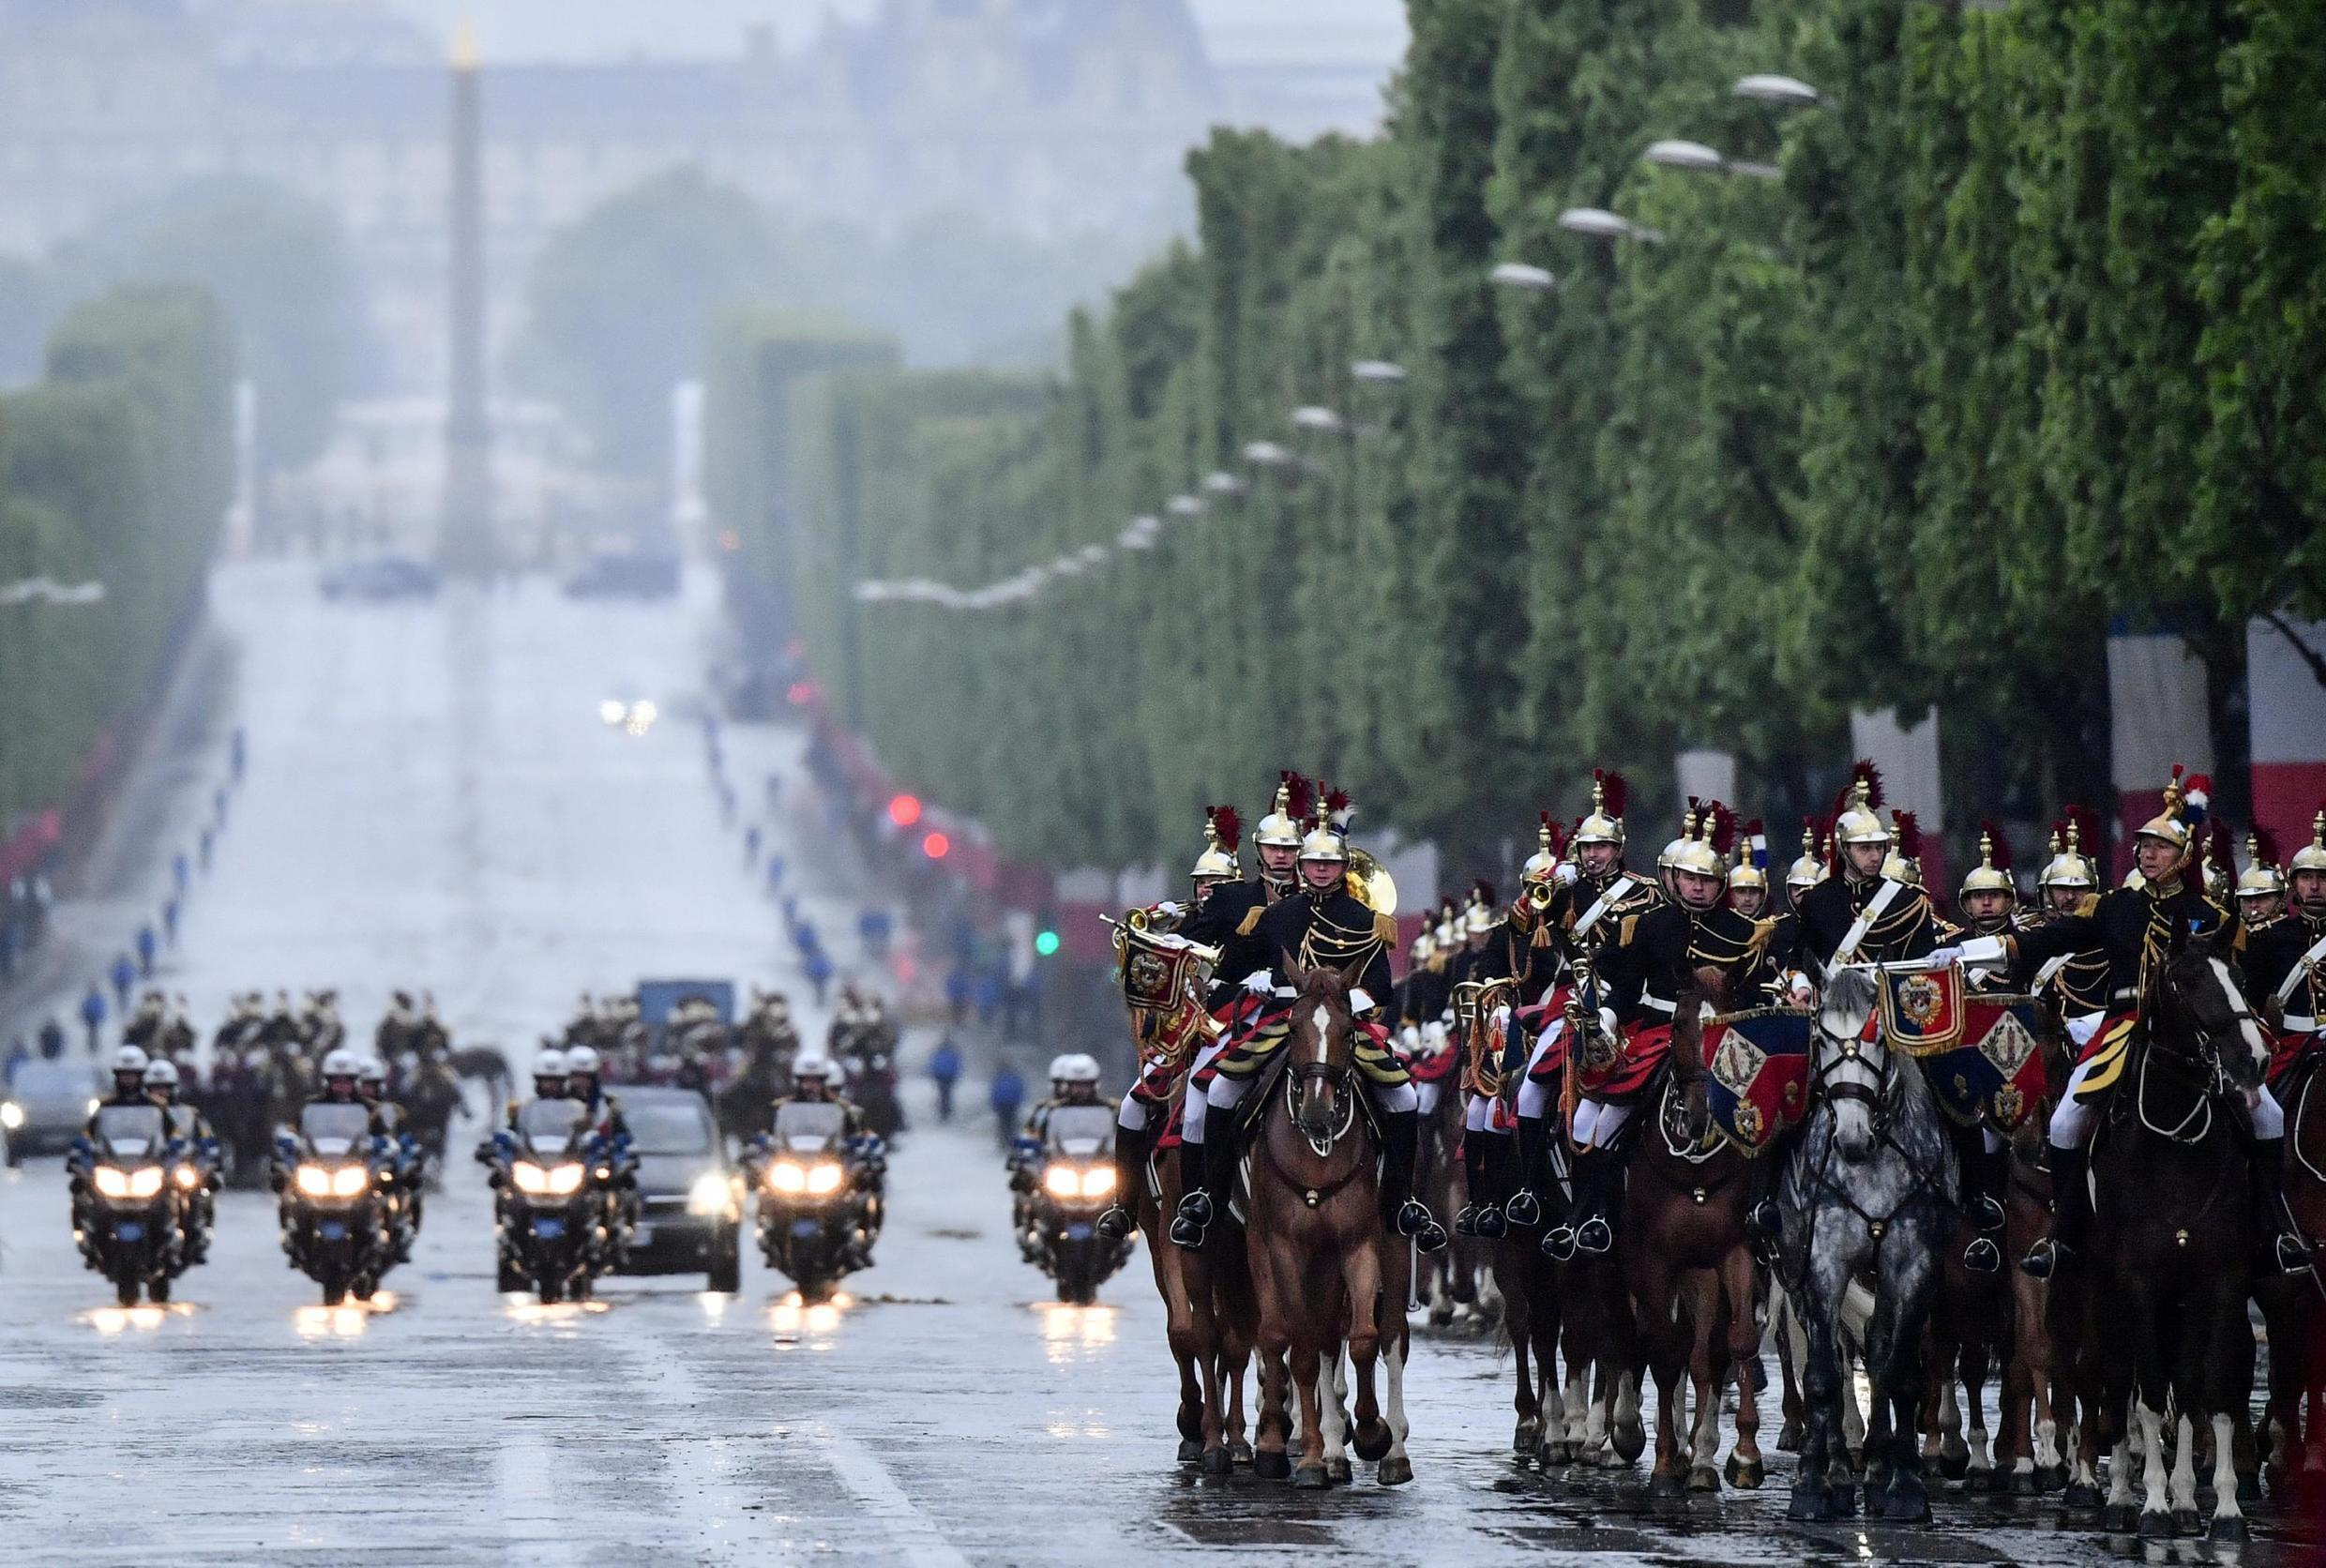 Republican guards ride down the Champs-Elysées in front of French President's Emmanuel Macron's car arriving for the ceremony marking the end of World War II in Paris.